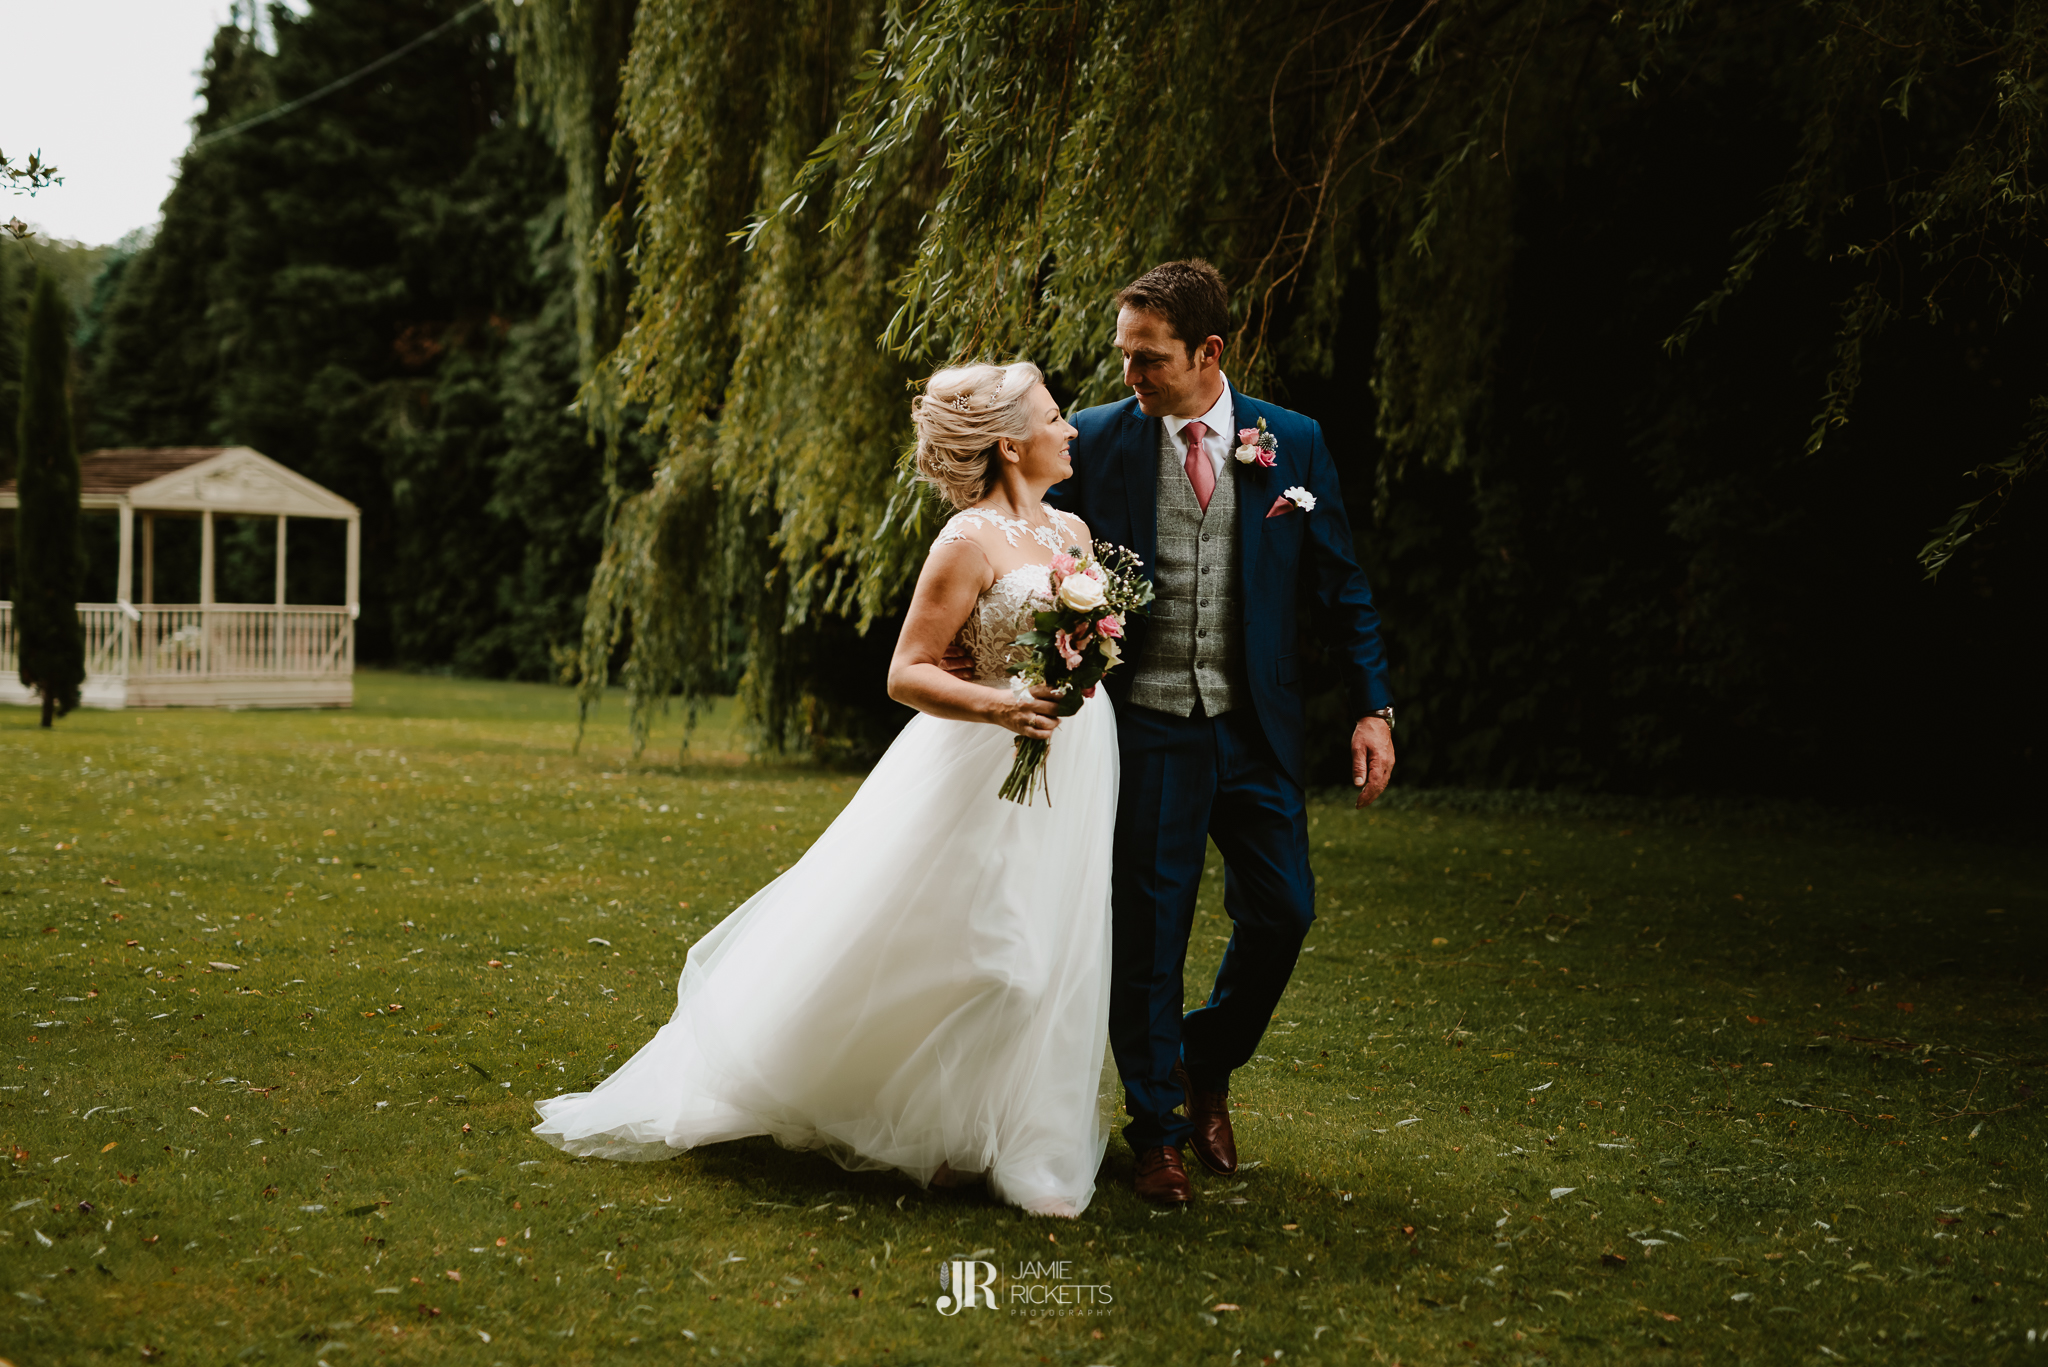 Wroxeter-Hotel-Wedding-Photography-In-Shropshire-By-Shropshire-Wedding-Photographer-Jamie-Ricketts-108.JPG